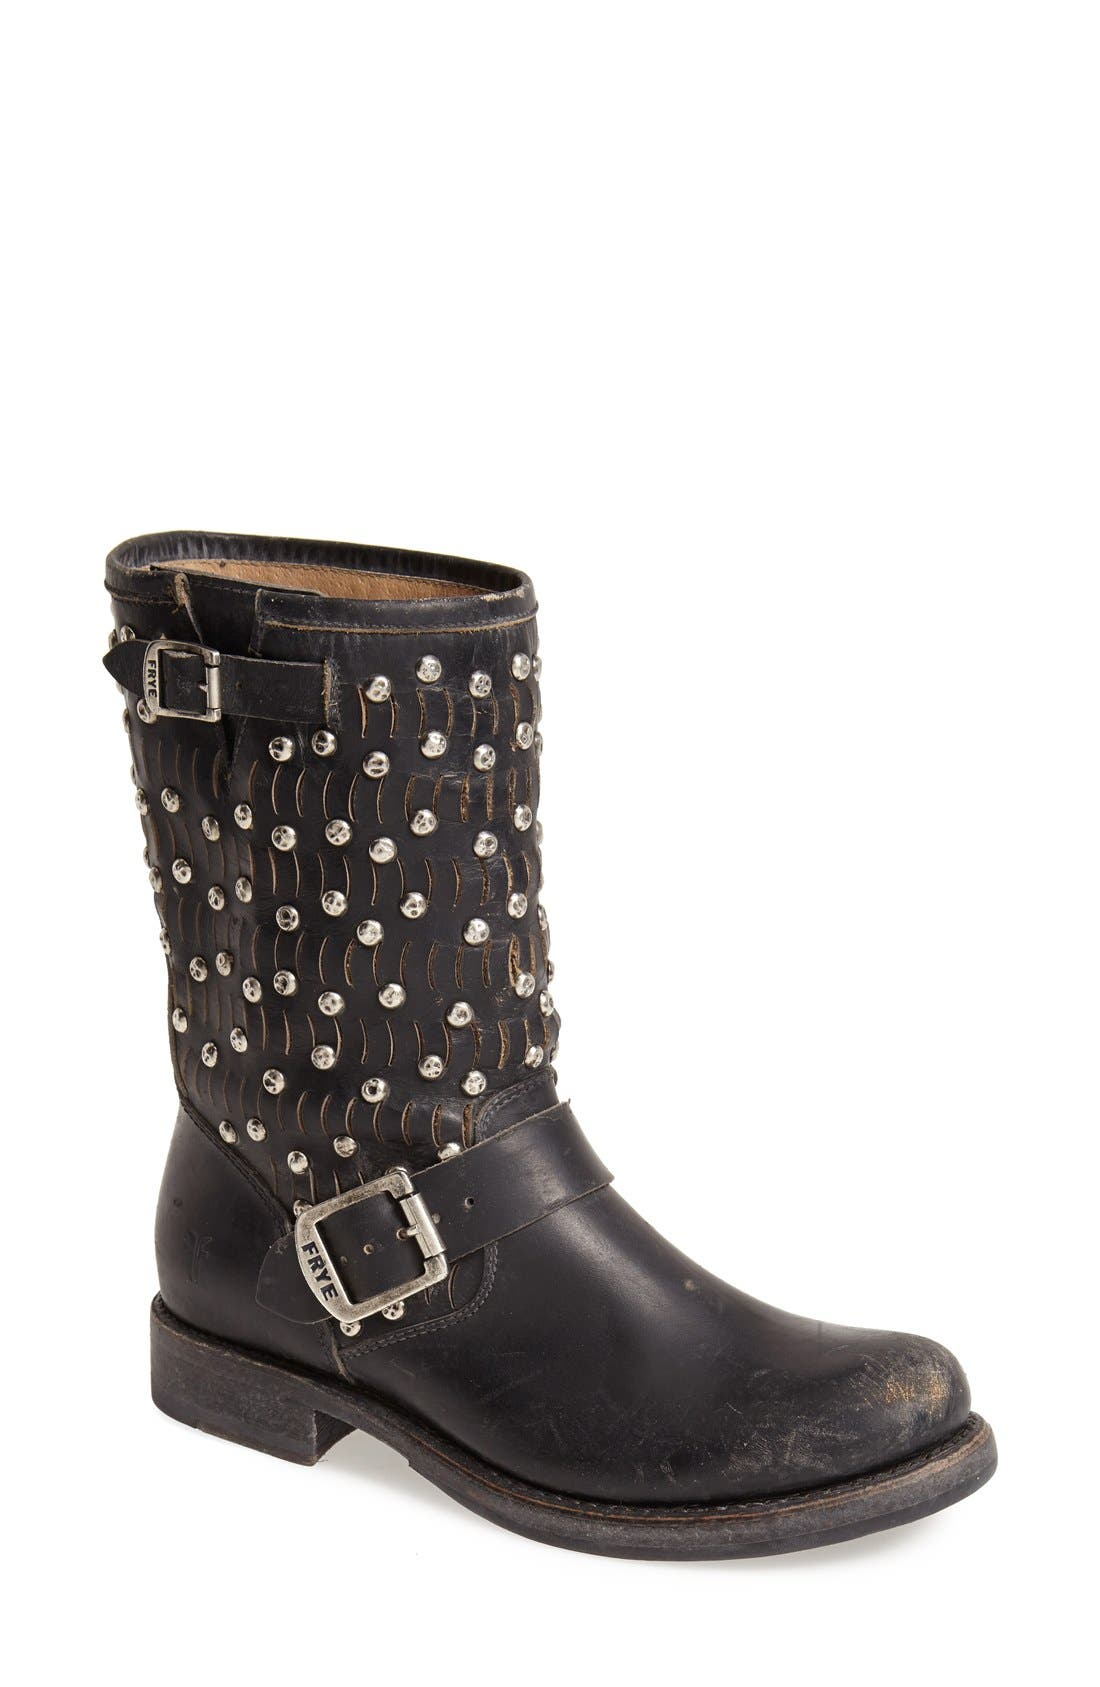 Alternate Image 1 Selected - Frye 'Jenna Cut Stud' Short Moto Boot (Women)